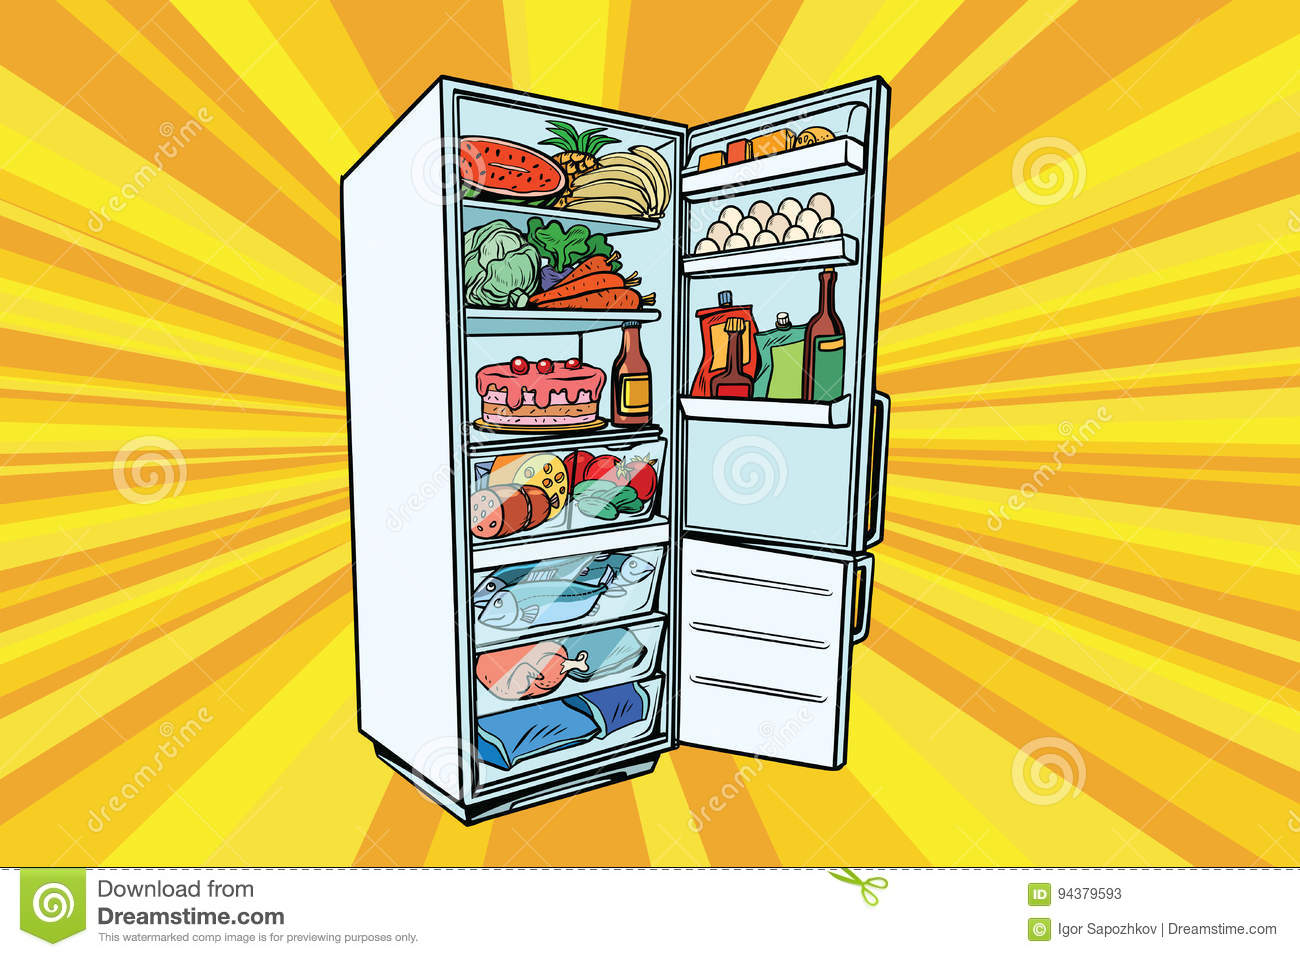 Home Refrigerator Filled With Food Stock Vector Image